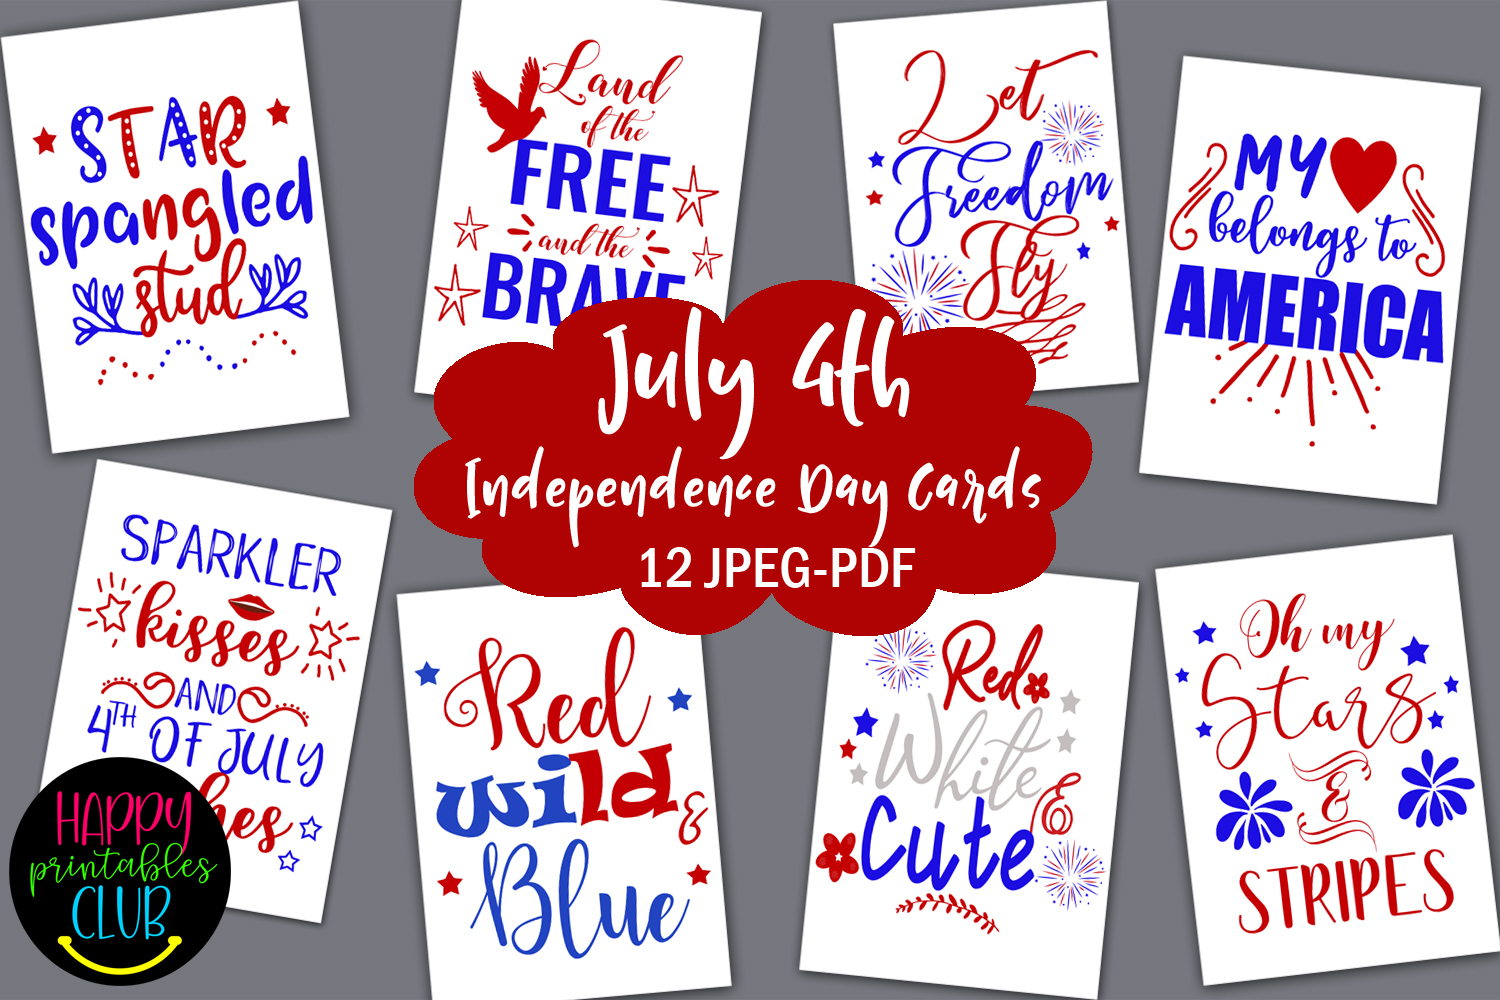 Download Free 4th Of July Cards Printable Graphic By Happy Printables Club for Cricut Explore, Silhouette and other cutting machines.